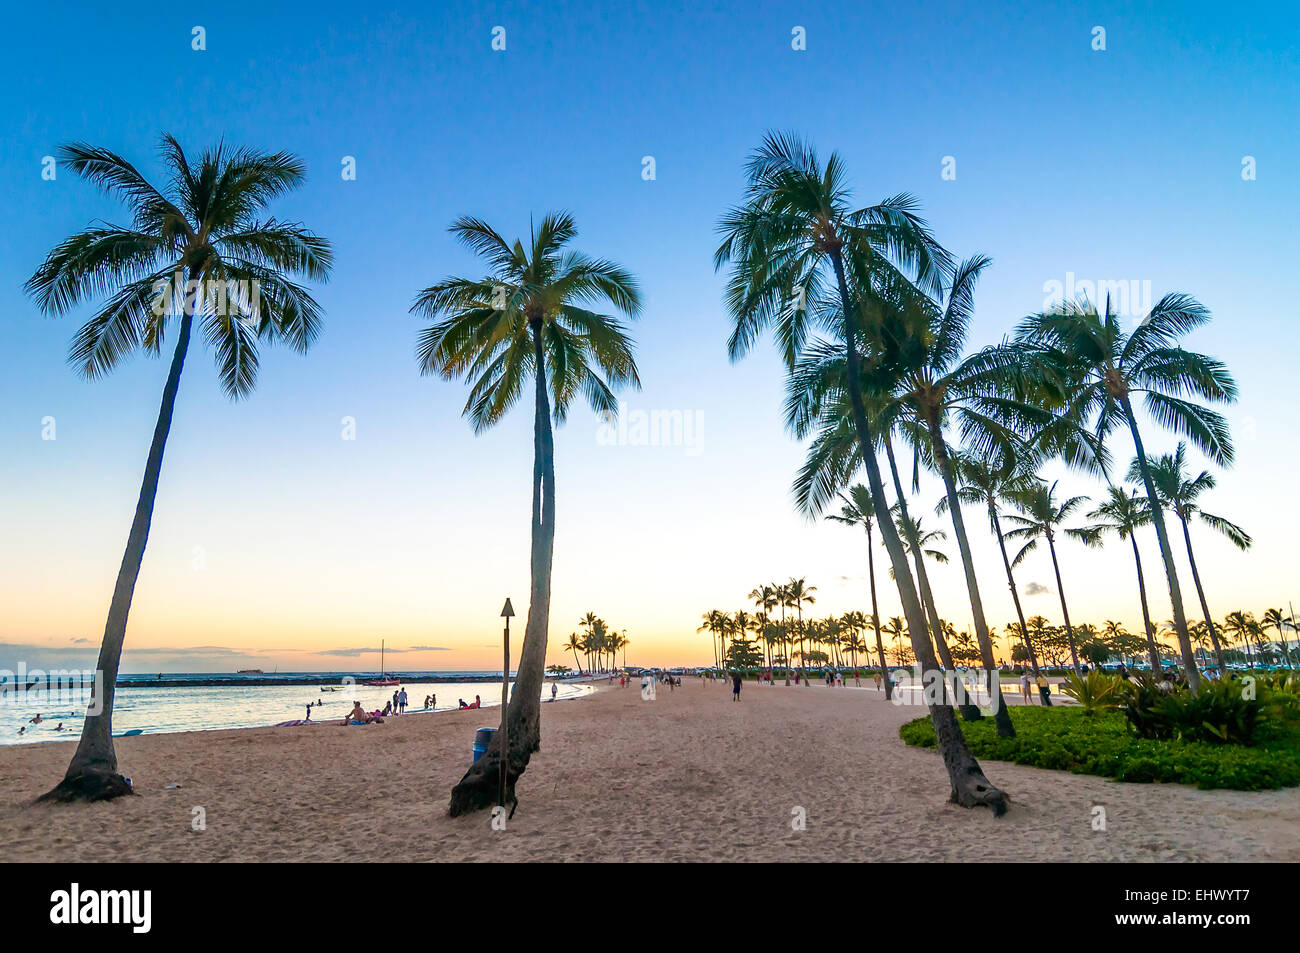 Sunset Time In Waikiki Beach Honolulu Hawaii Stock Photo